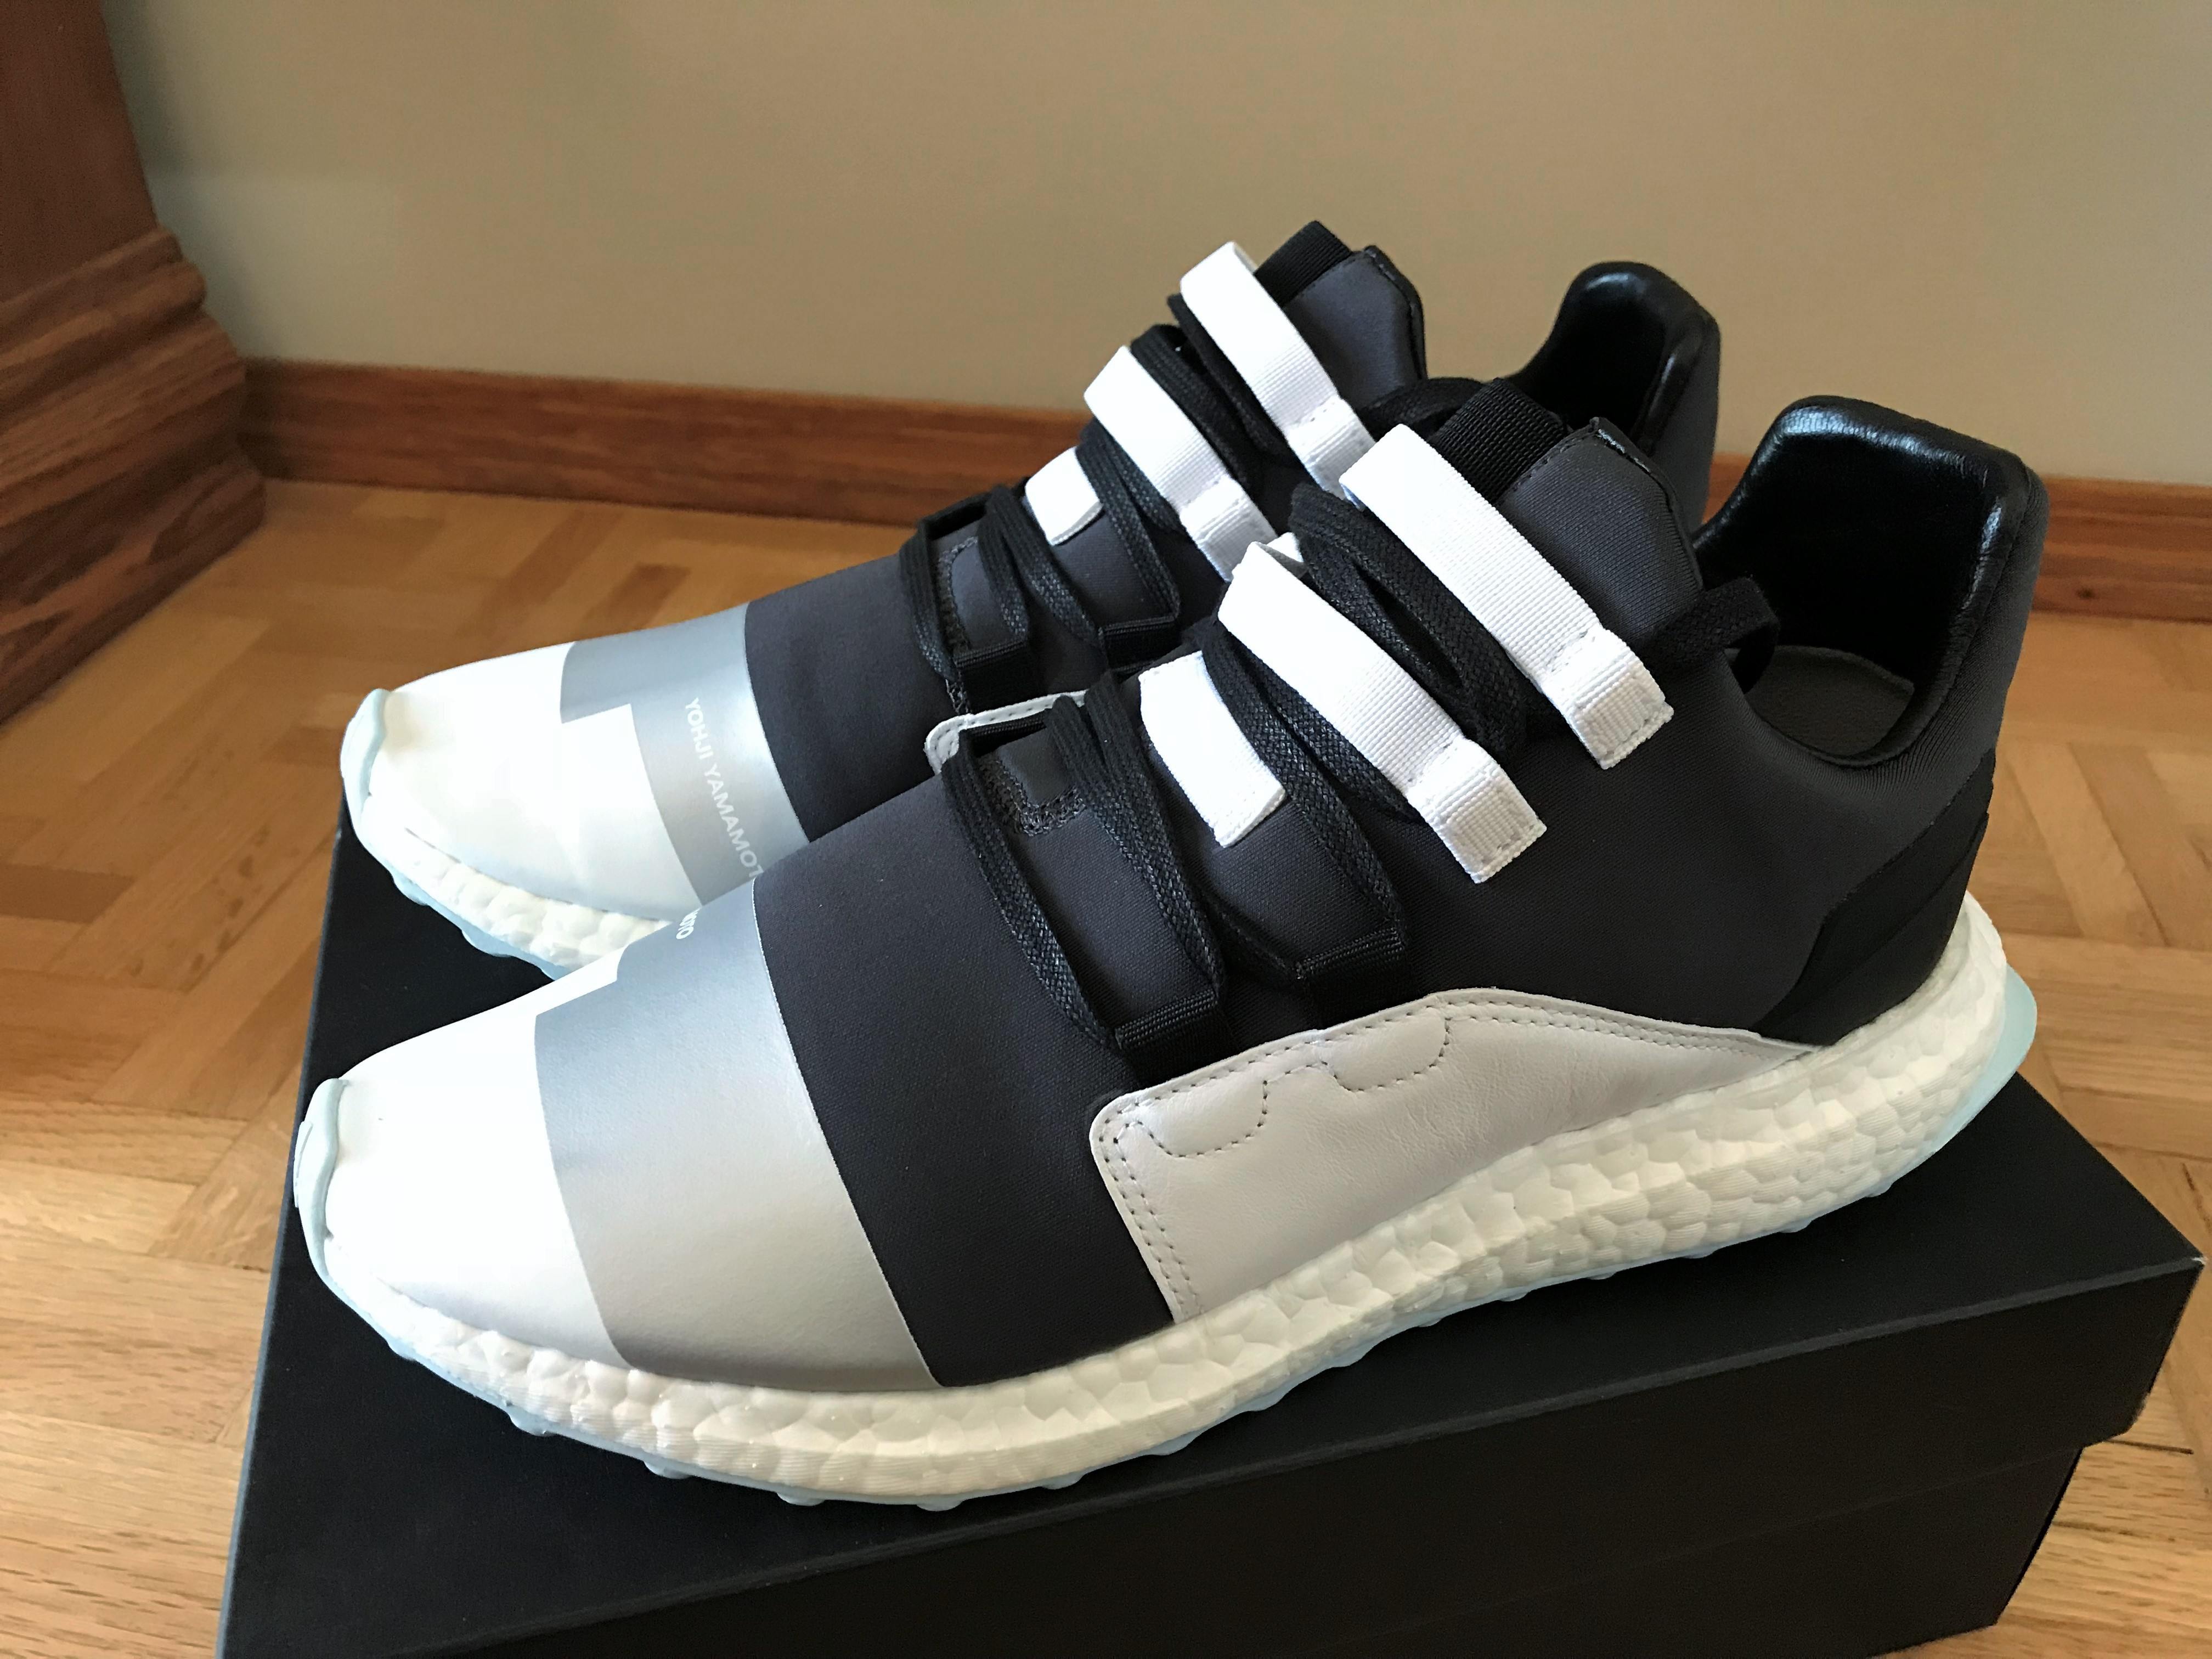 Y-3 NEW - US 9 - Fits US 8 - Y-3 Kozoko Low Sneakers - BY2633 -  410 Size 9  - Low-Top Sneakers for Sale - Grailed 140dbfcd4